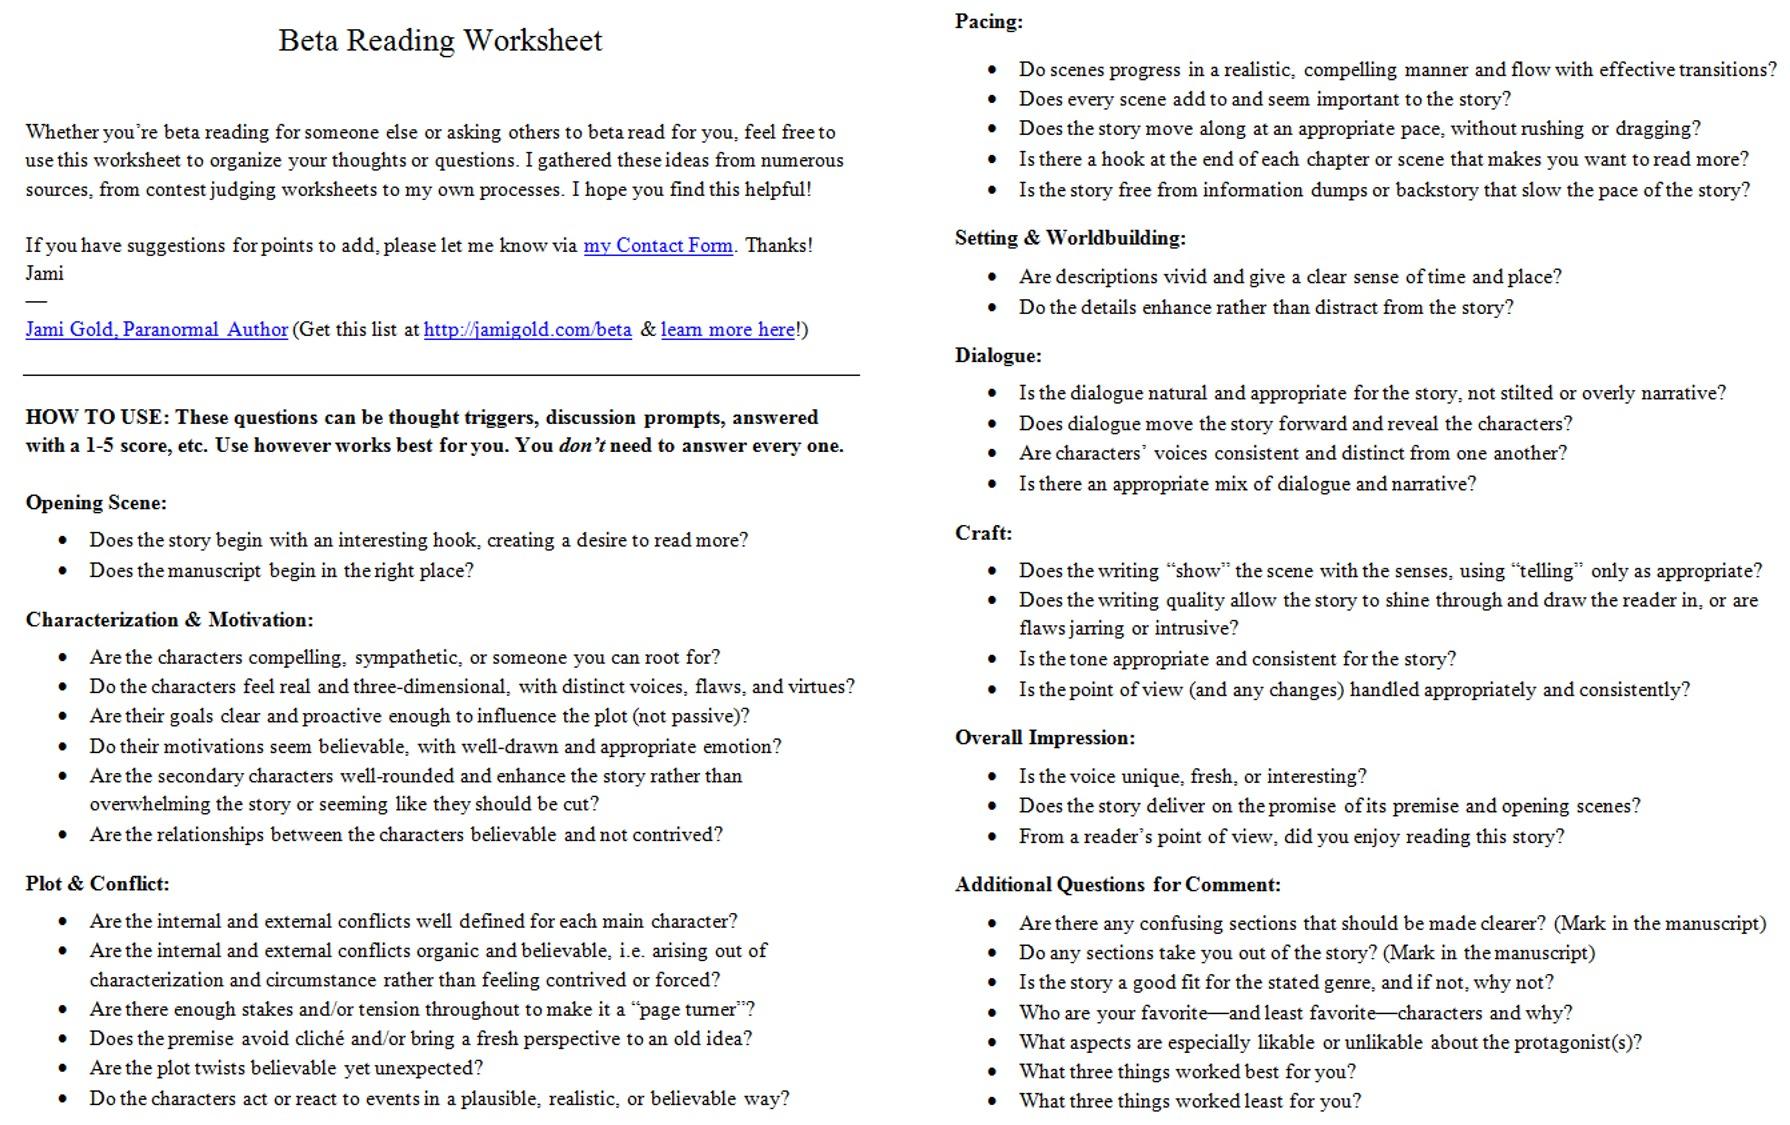 Aldiablosus  Seductive Worksheets For Writers  Jami Gold Paranormal Author With Entrancing Screen Shot Of The Twopage Beta Reading Worksheet With Delightful Worksheet Past Simple Also Bible Study Worksheets On Faith In Addition Number Worksheets  And Preventing Infectious Diseases Worksheet As Well As Preposition Picture Worksheets For Kids Additionally Writing Ionic Compounds Worksheet From Jamigoldcom With Aldiablosus  Entrancing Worksheets For Writers  Jami Gold Paranormal Author With Delightful Screen Shot Of The Twopage Beta Reading Worksheet And Seductive Worksheet Past Simple Also Bible Study Worksheets On Faith In Addition Number Worksheets  From Jamigoldcom